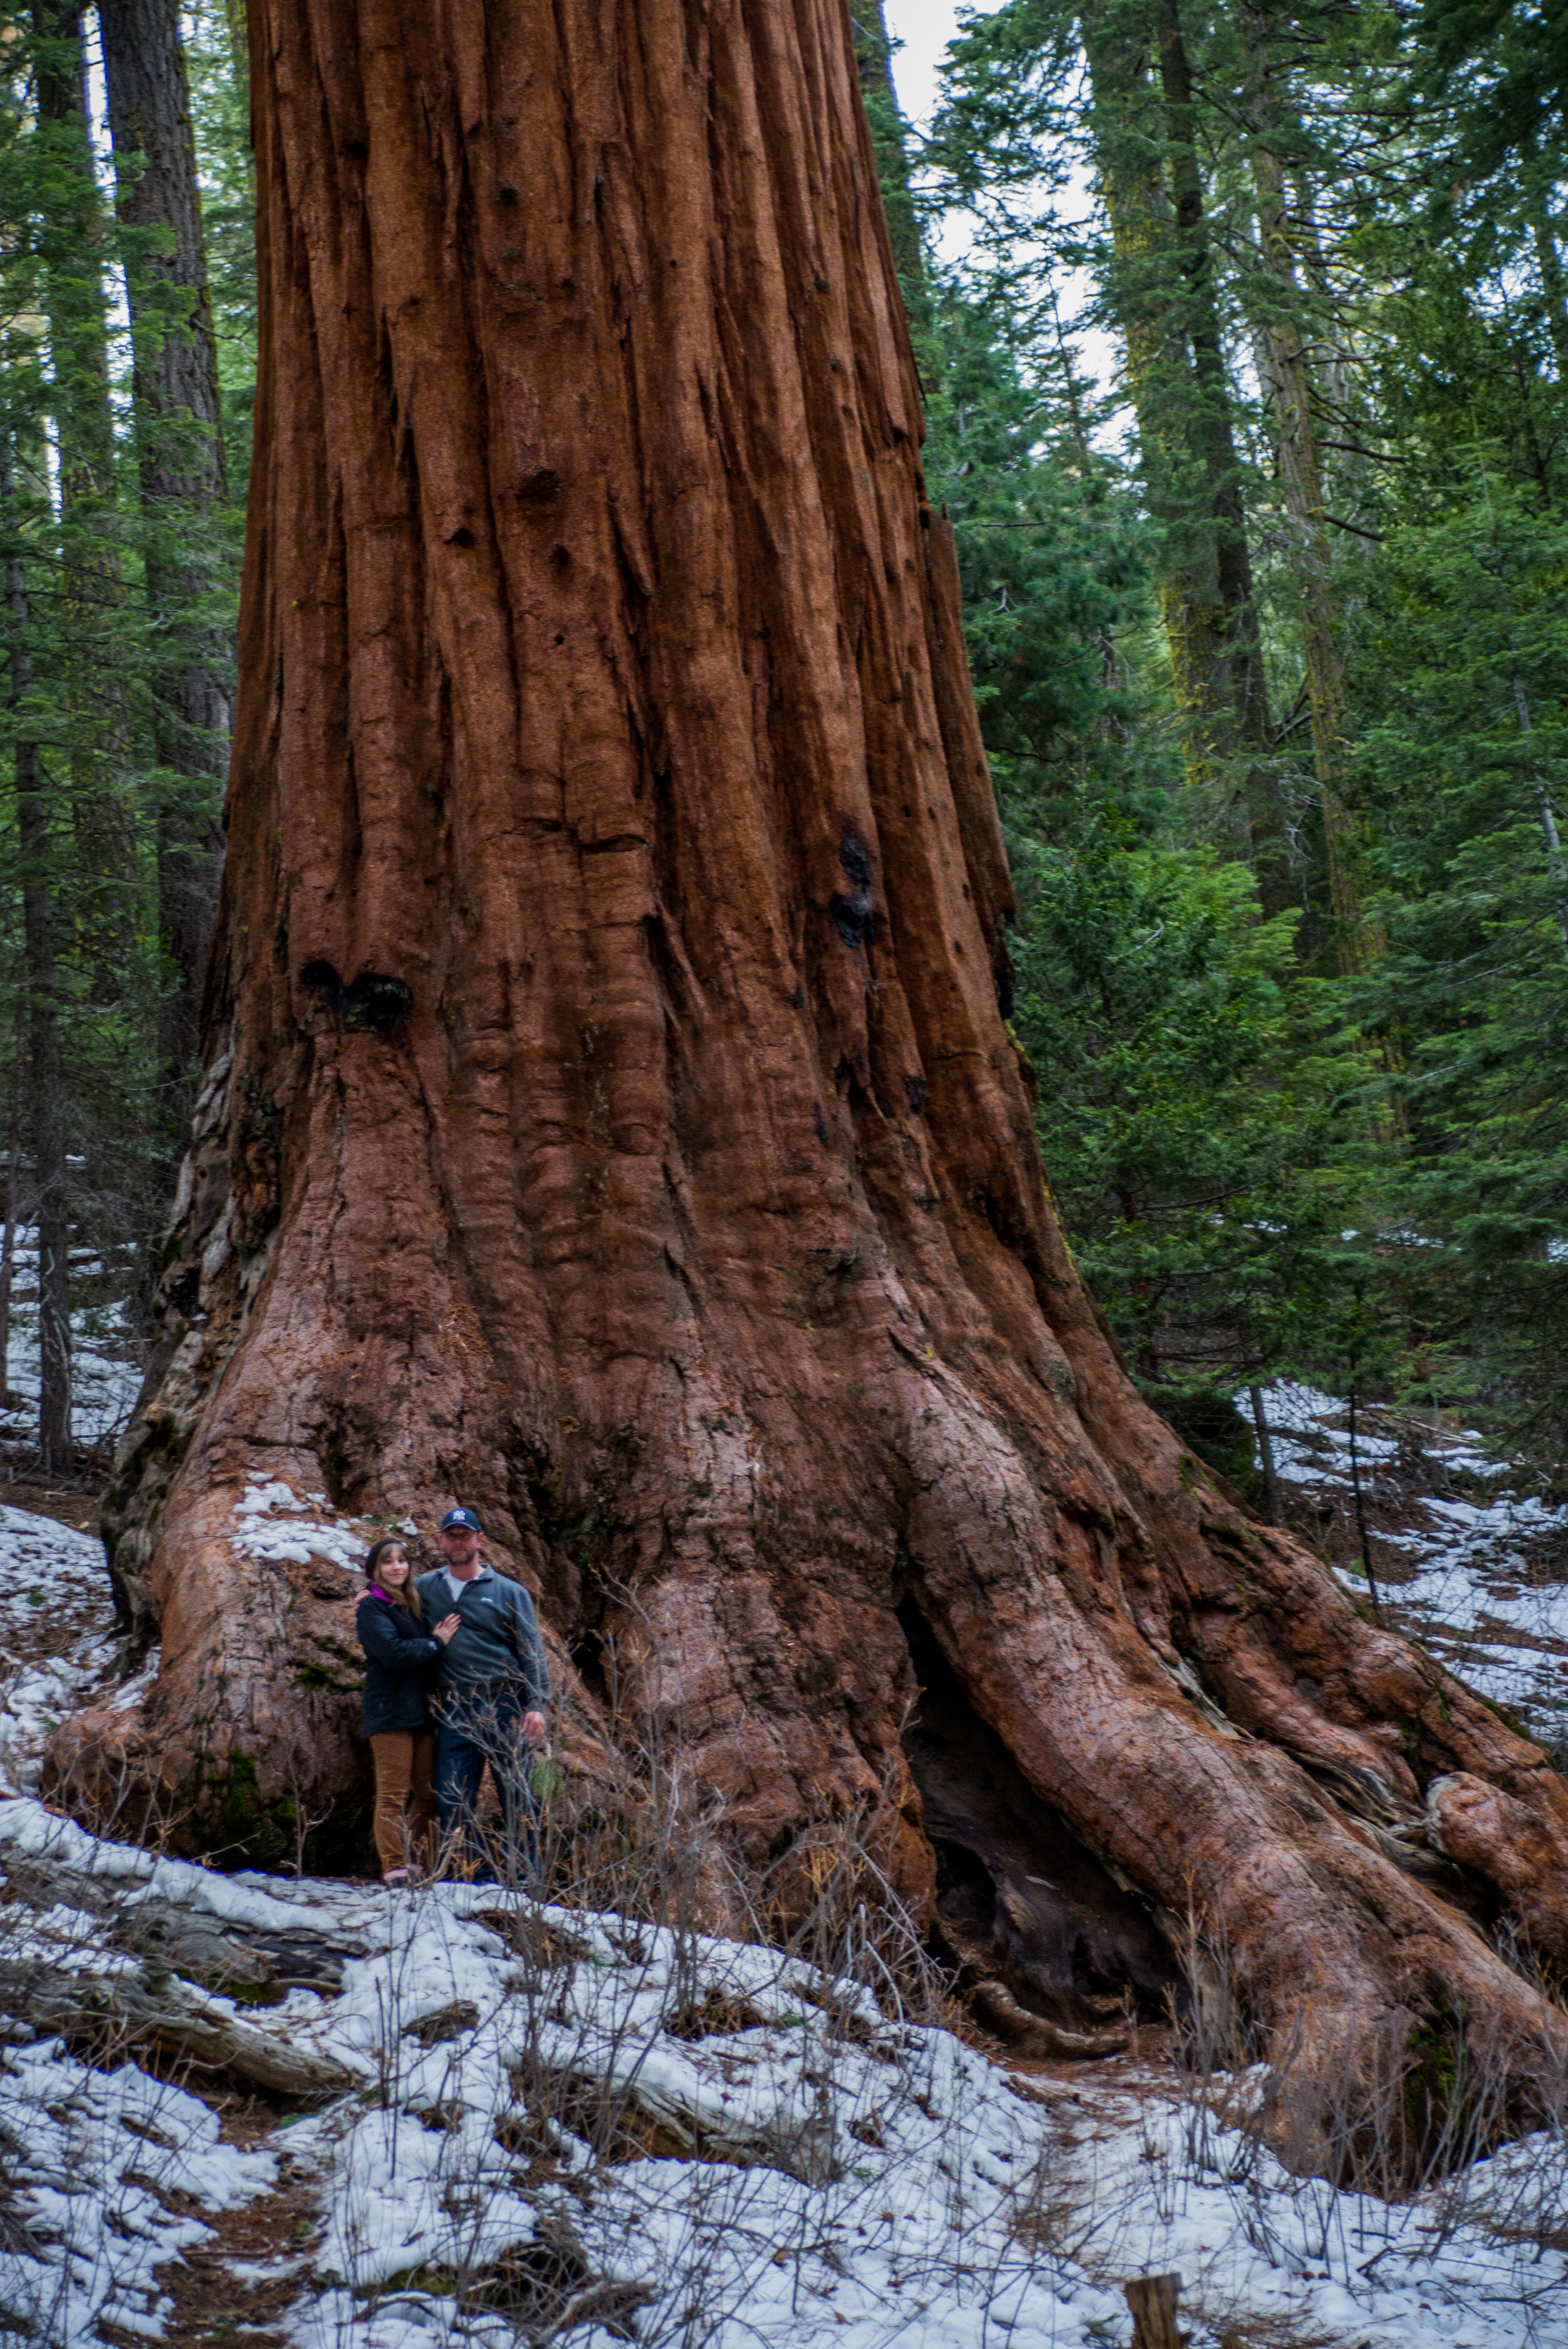 Giant Redwoods, Mariposa Grove, California - A 15-Day California Road-Trip Itinerary